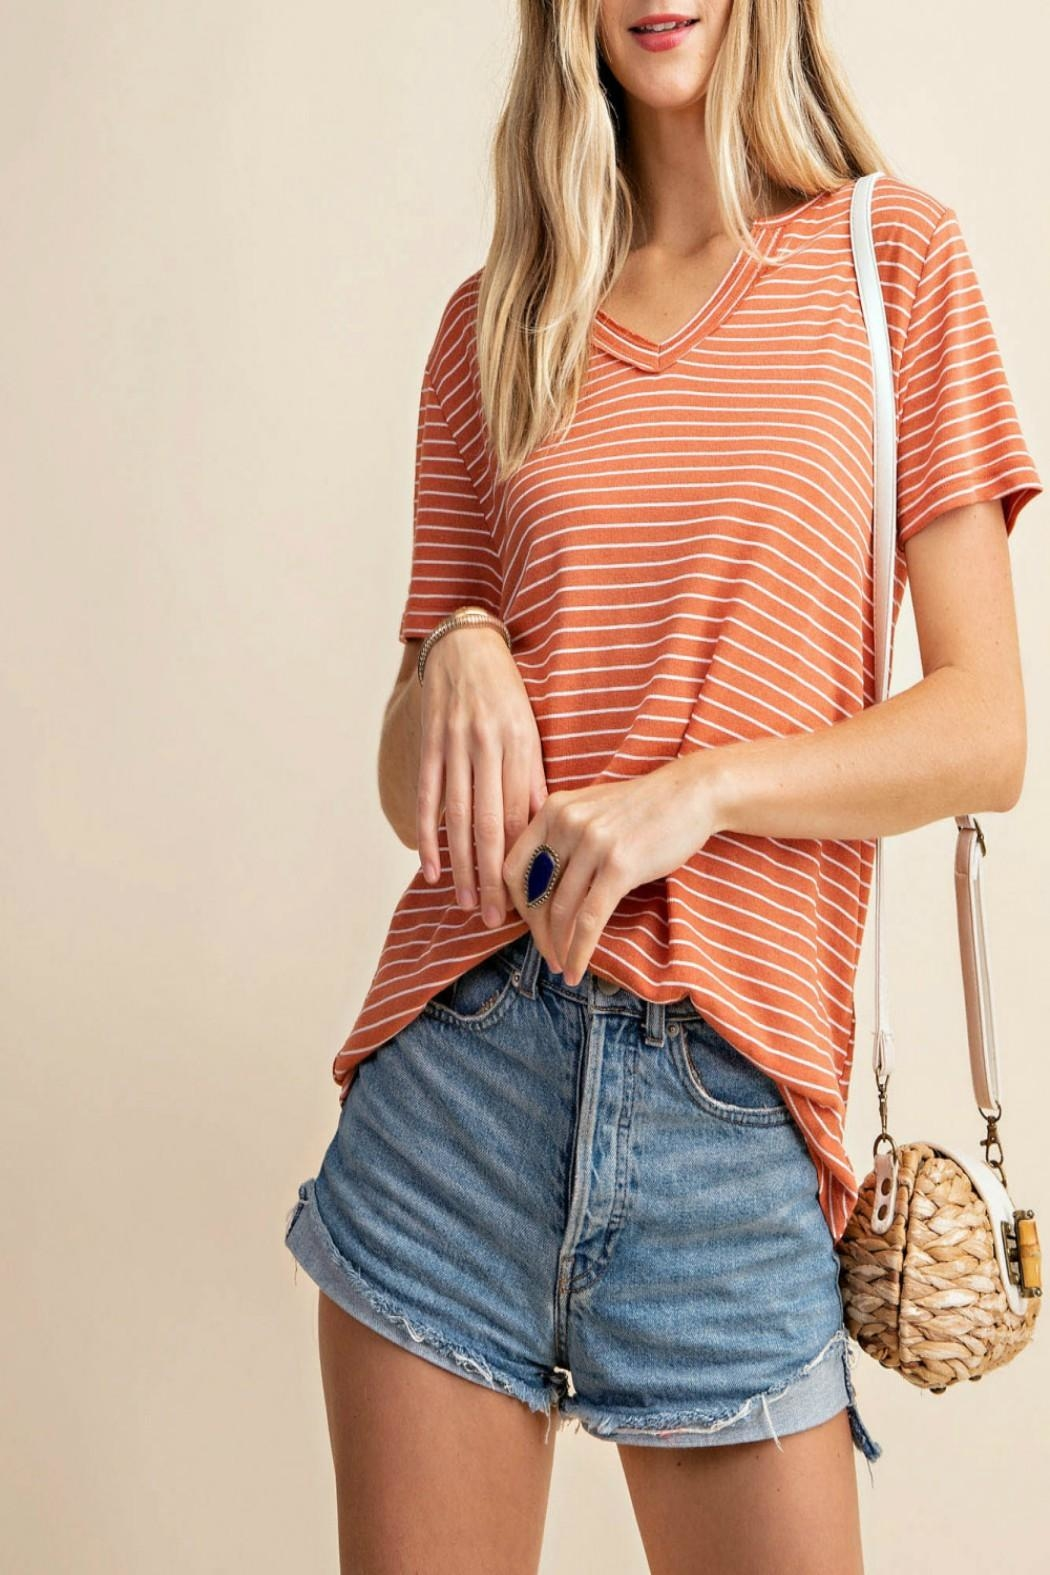 KORI AMERICA V-Neck Striped Top - Back Cropped Image